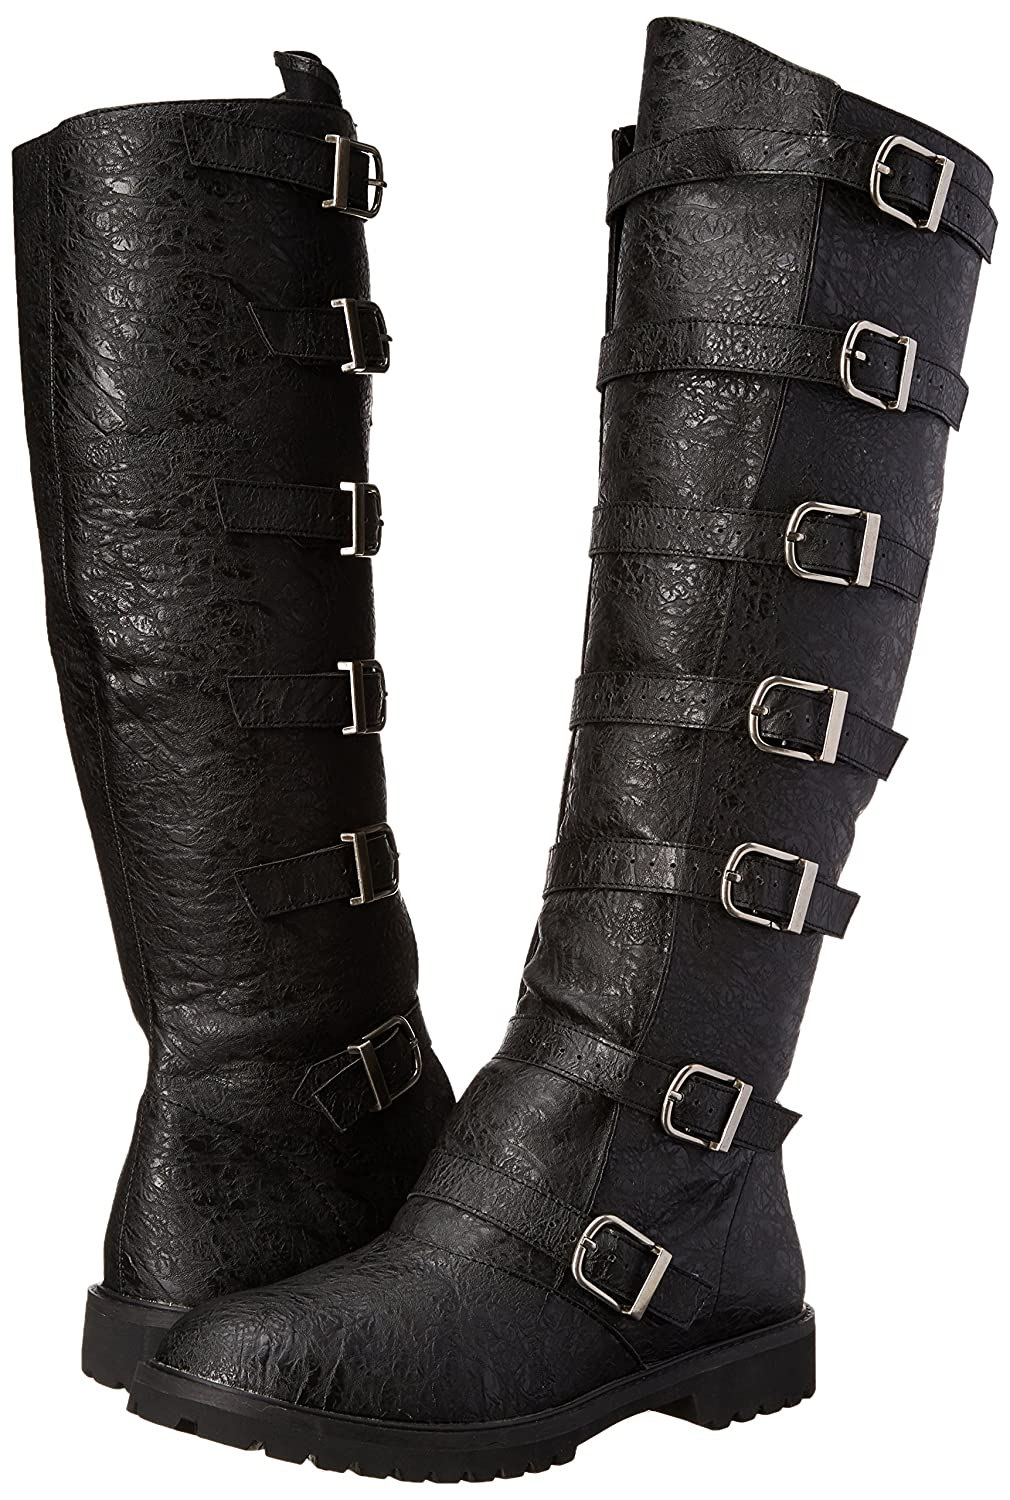 Deluxe Adult Costumes - Men's tall black multi-buckled manmade synthetic gotham-110 engineer boots.